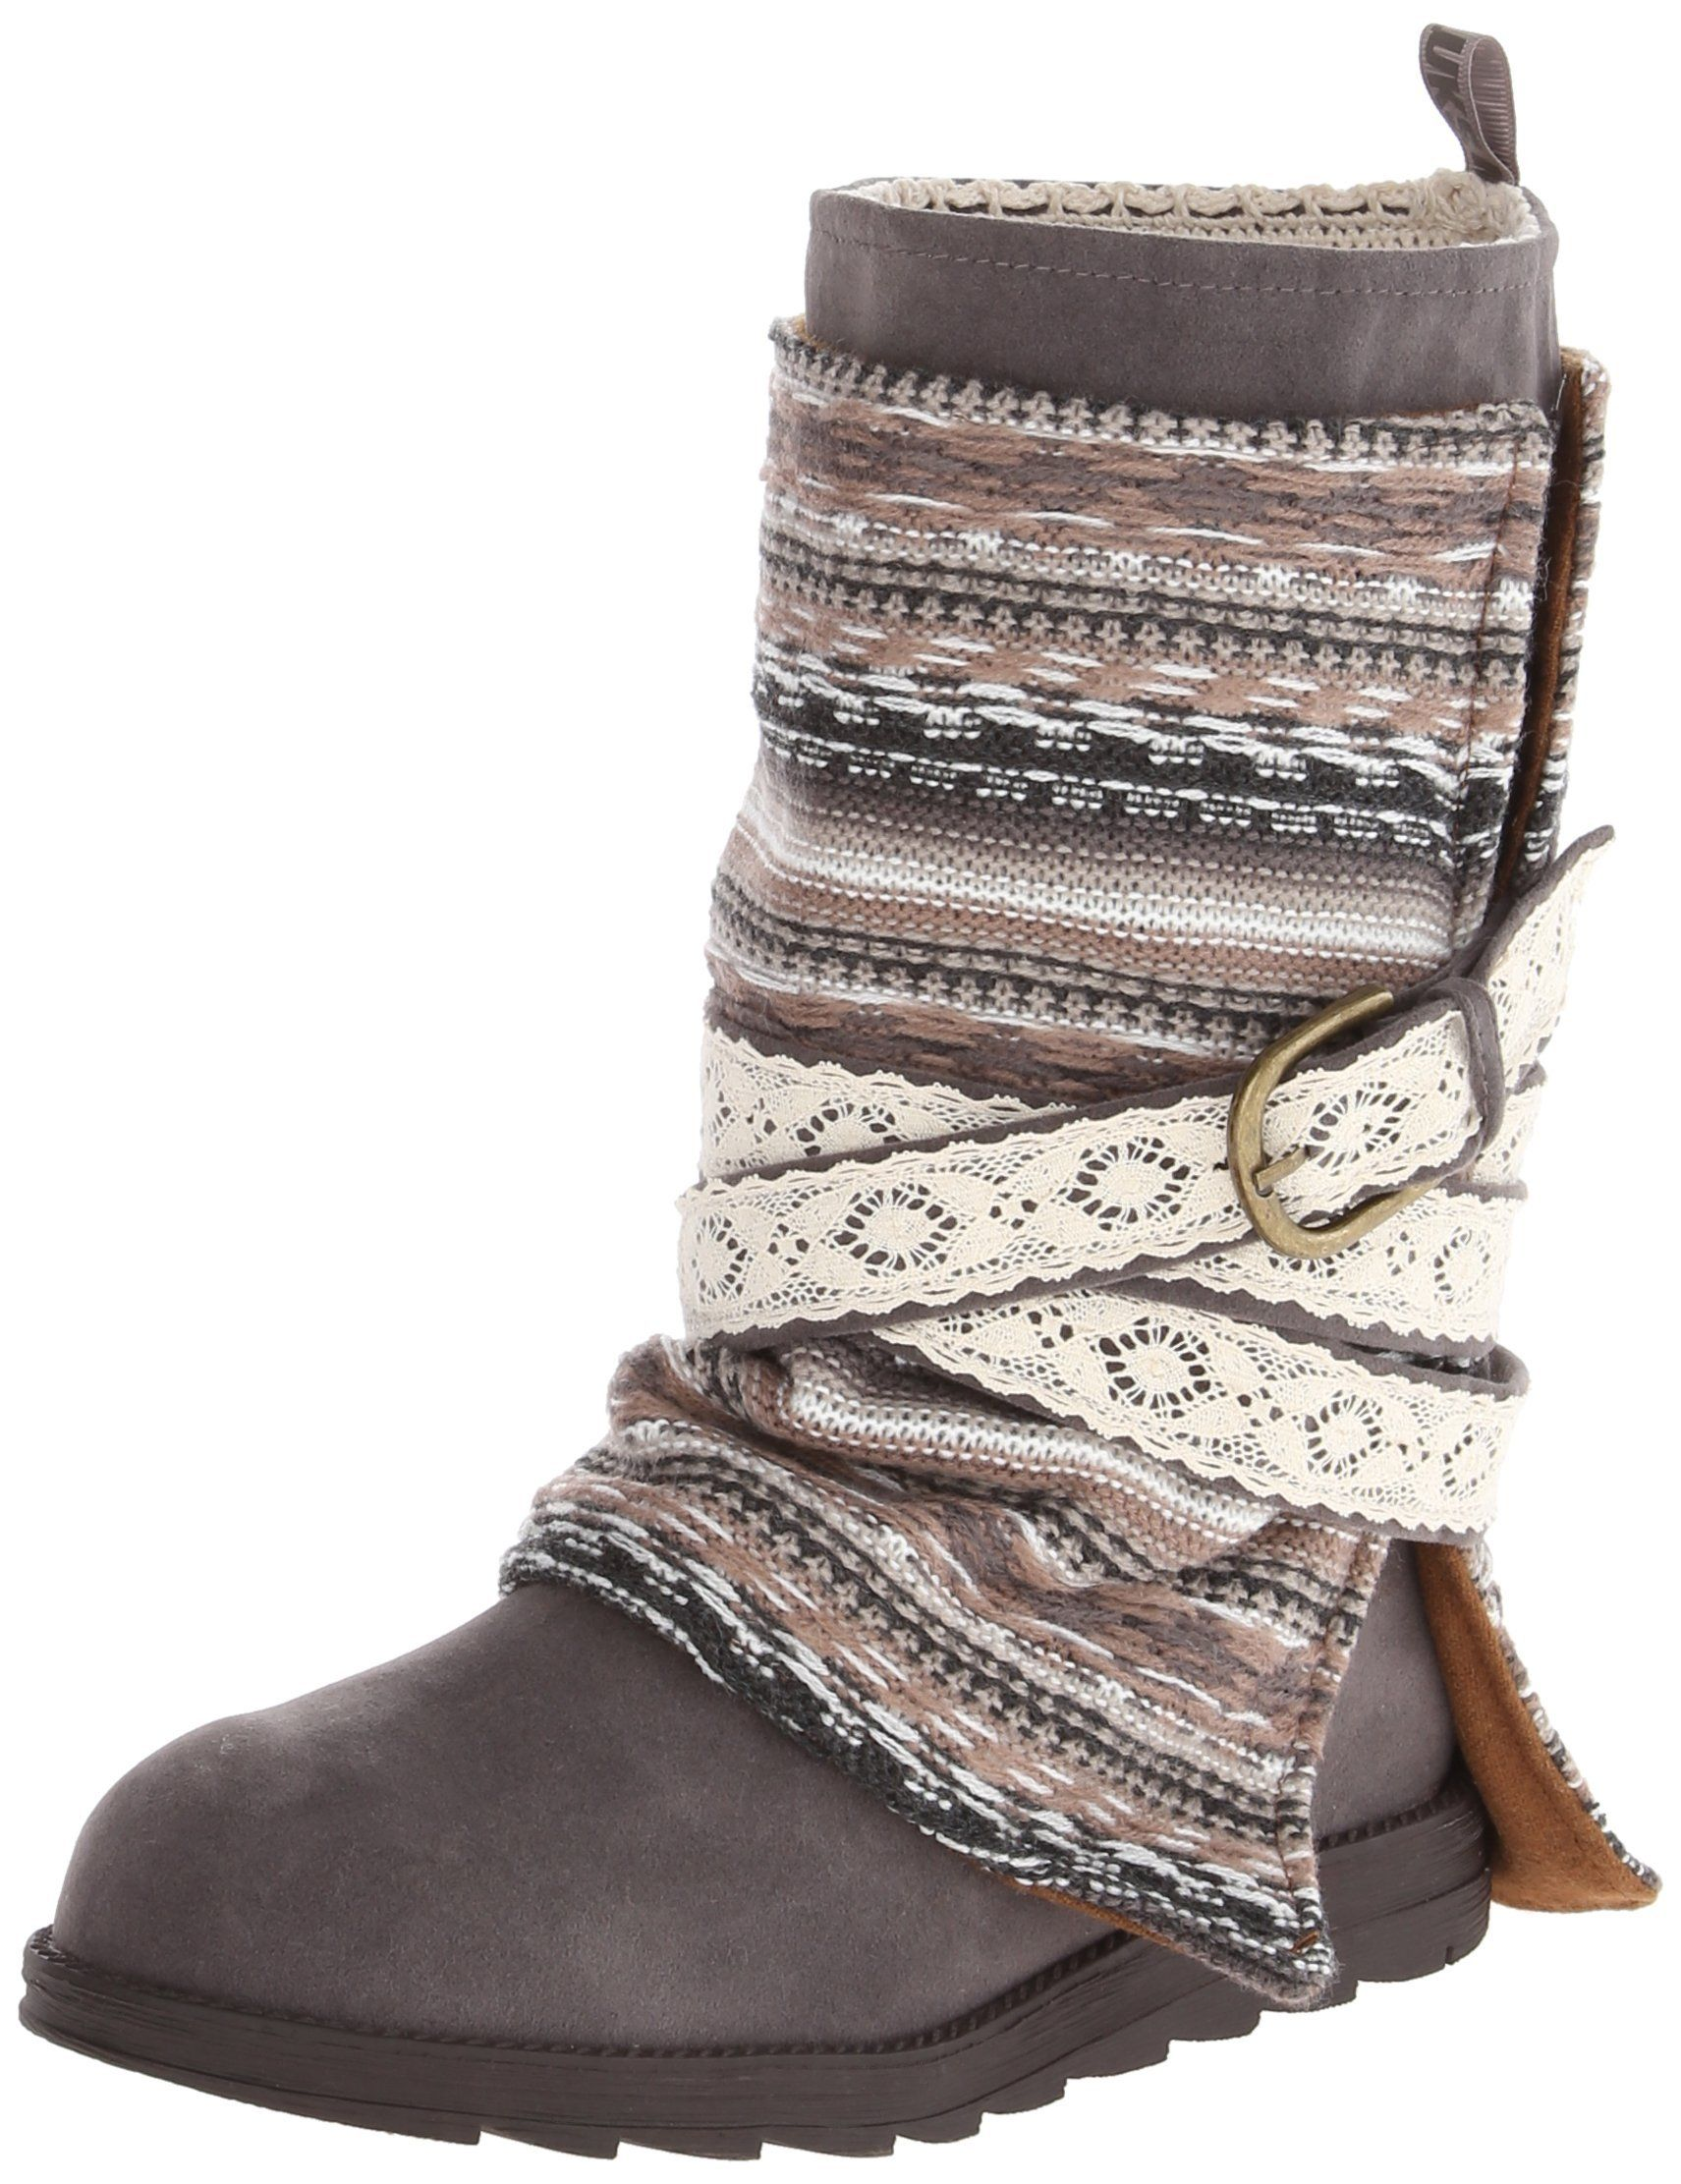 Muk Luks Women's Nikki Belt Wrapped Boot Grey 8 B(M) US